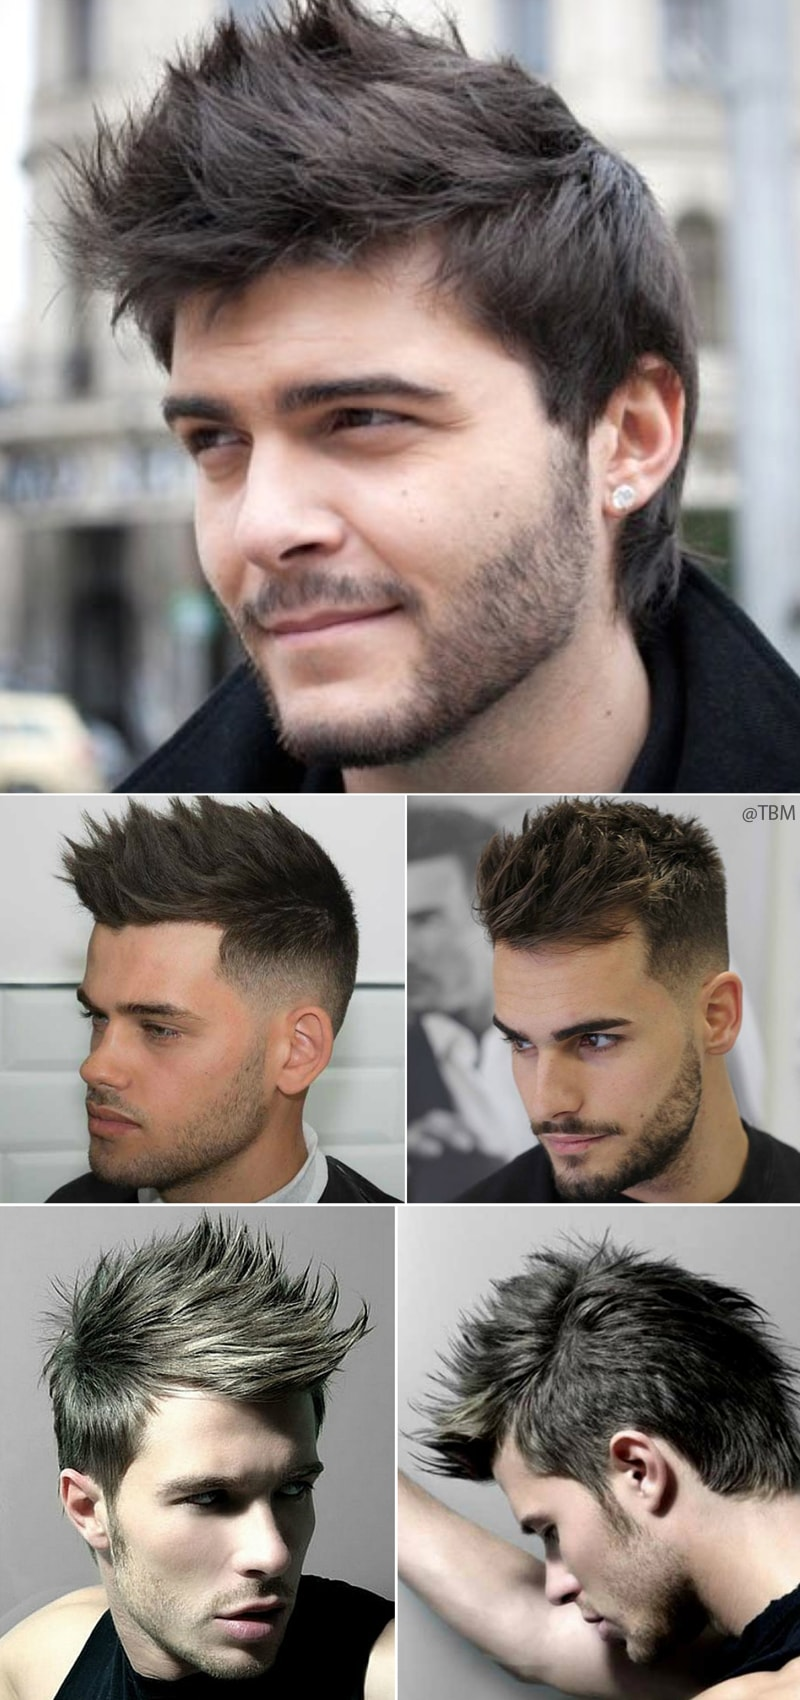 men's spiky hairstyles